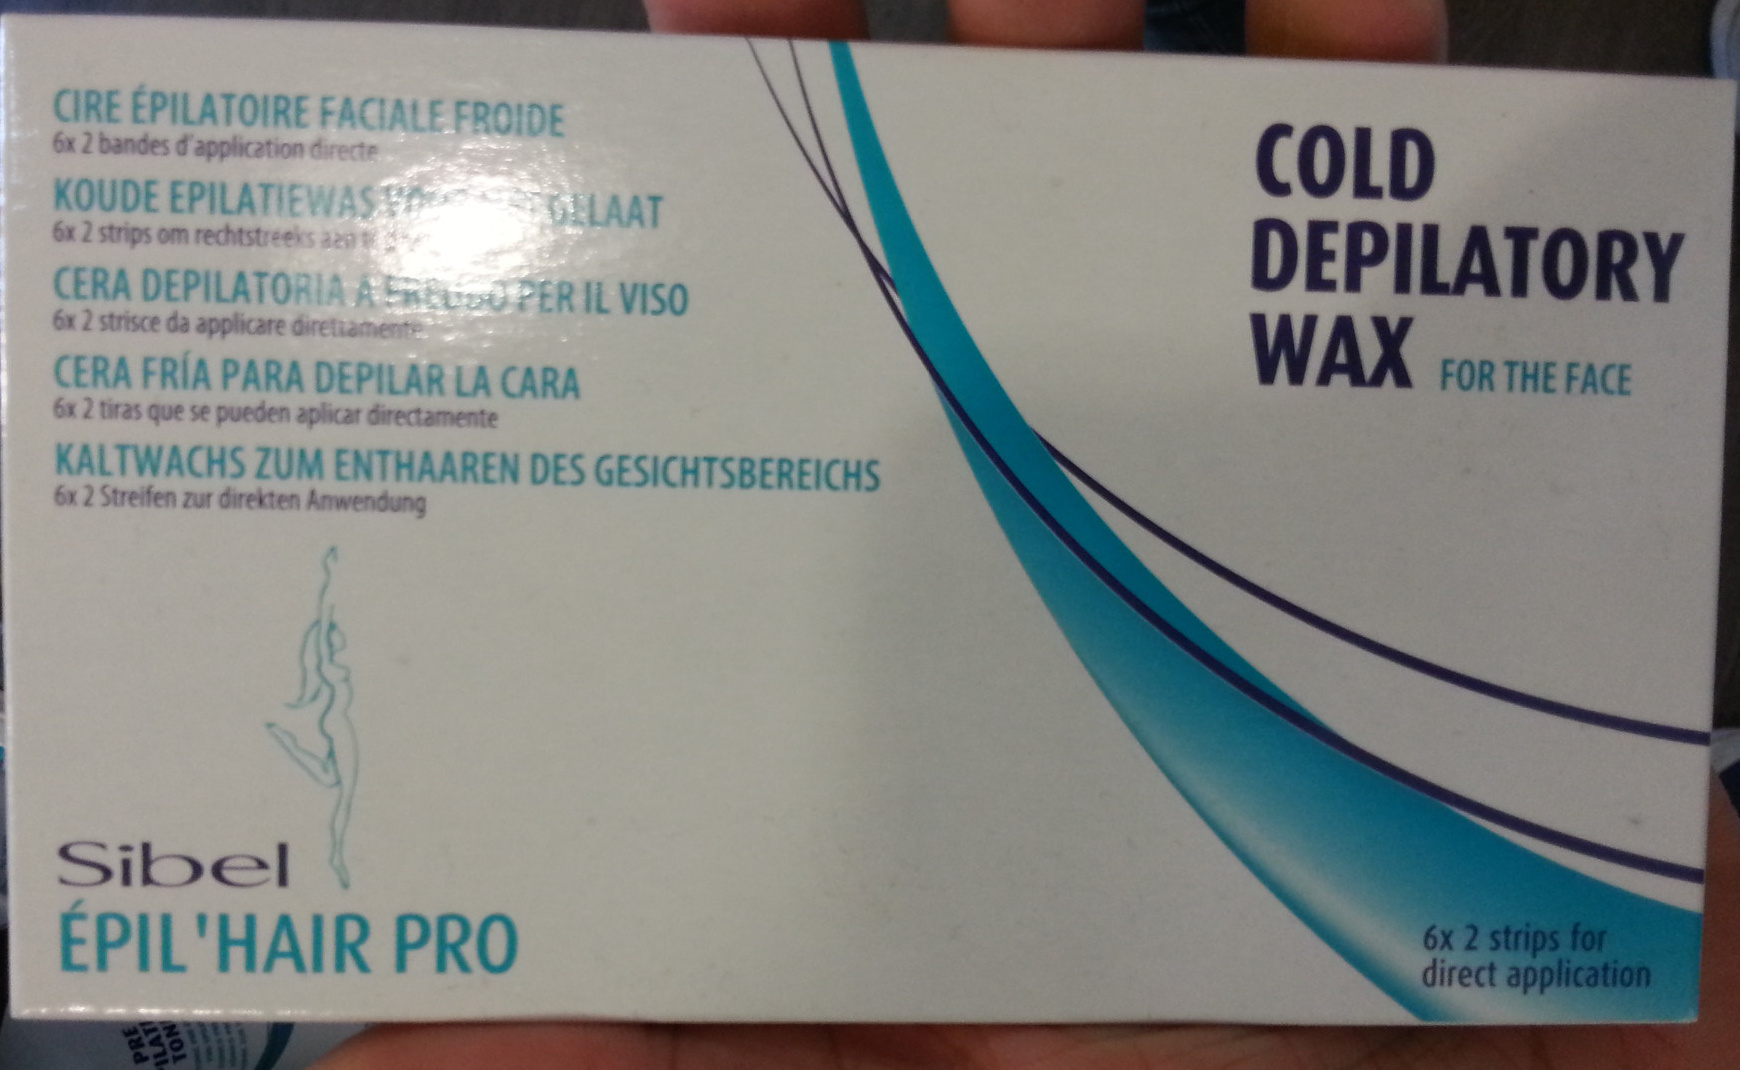 Cold Depilatory Wax for the face - Product